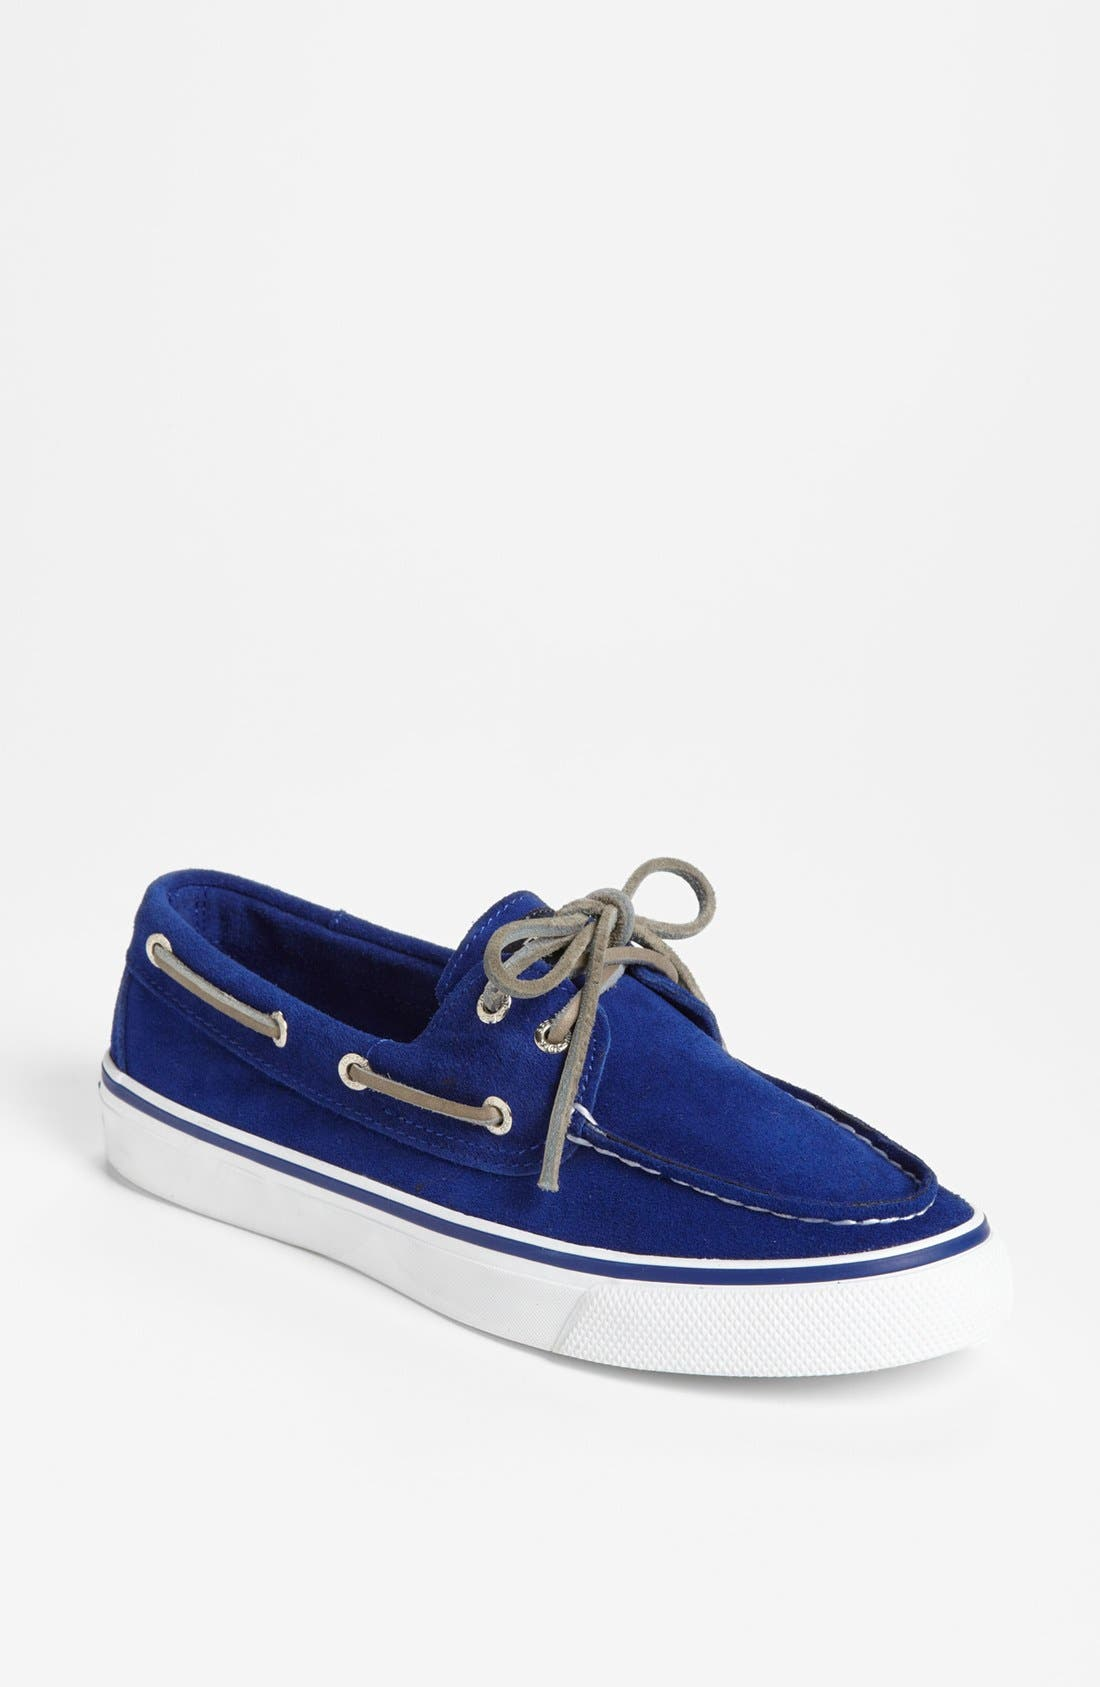 Top-Sider<sup>®</sup> 'Bahama' Sequined Boat Shoe,                             Main thumbnail 24, color,